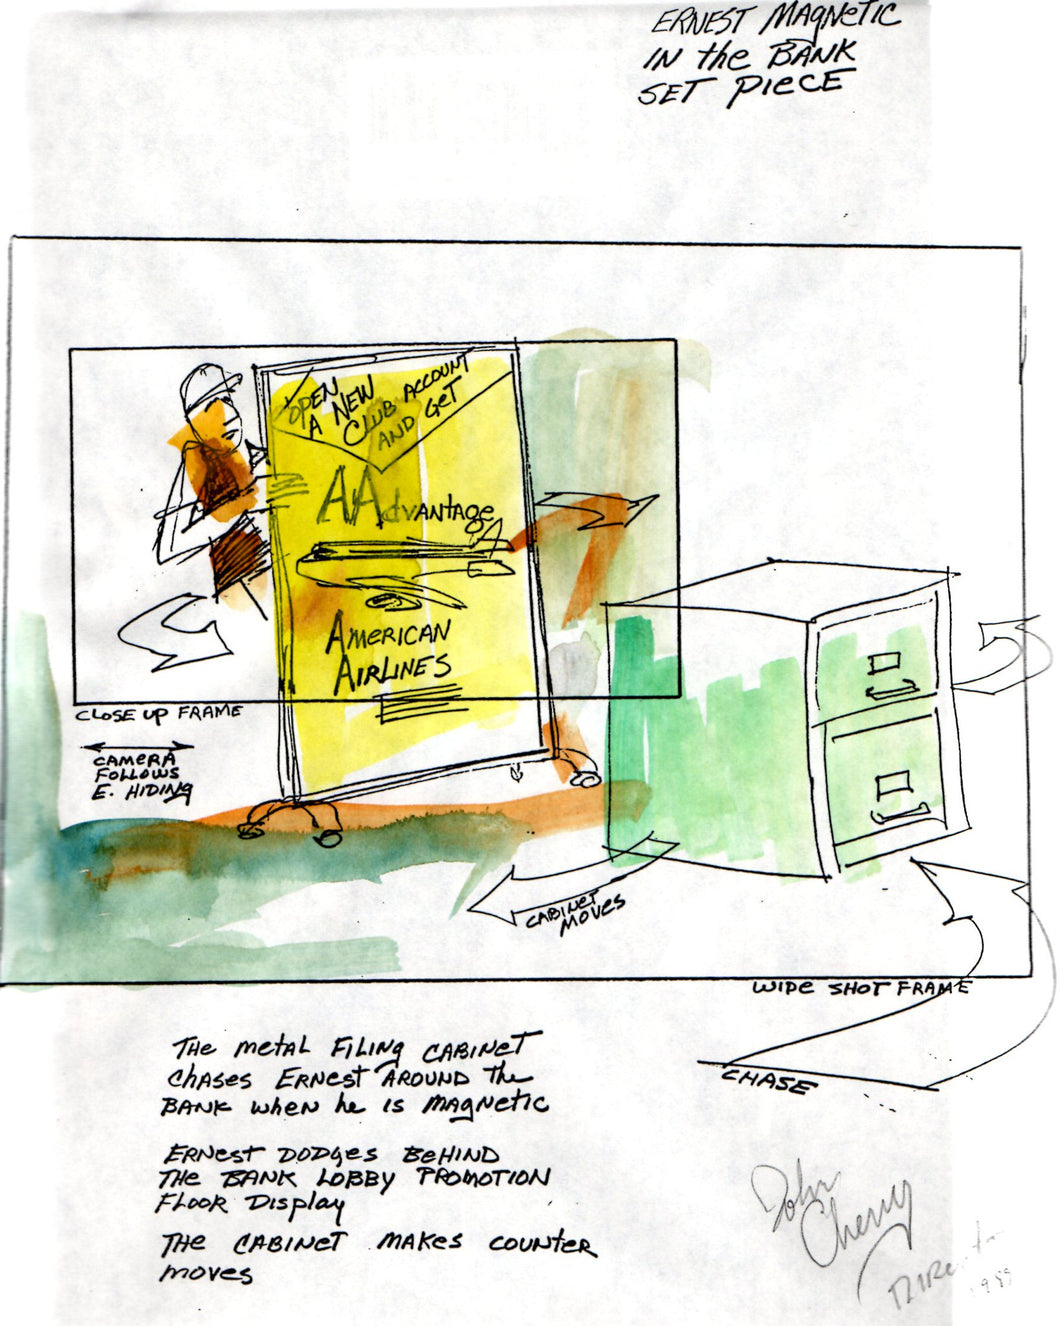 Opening Sequence, Magnetic Ernest - Ernest Goes to Jail Storyboard - SBJ012